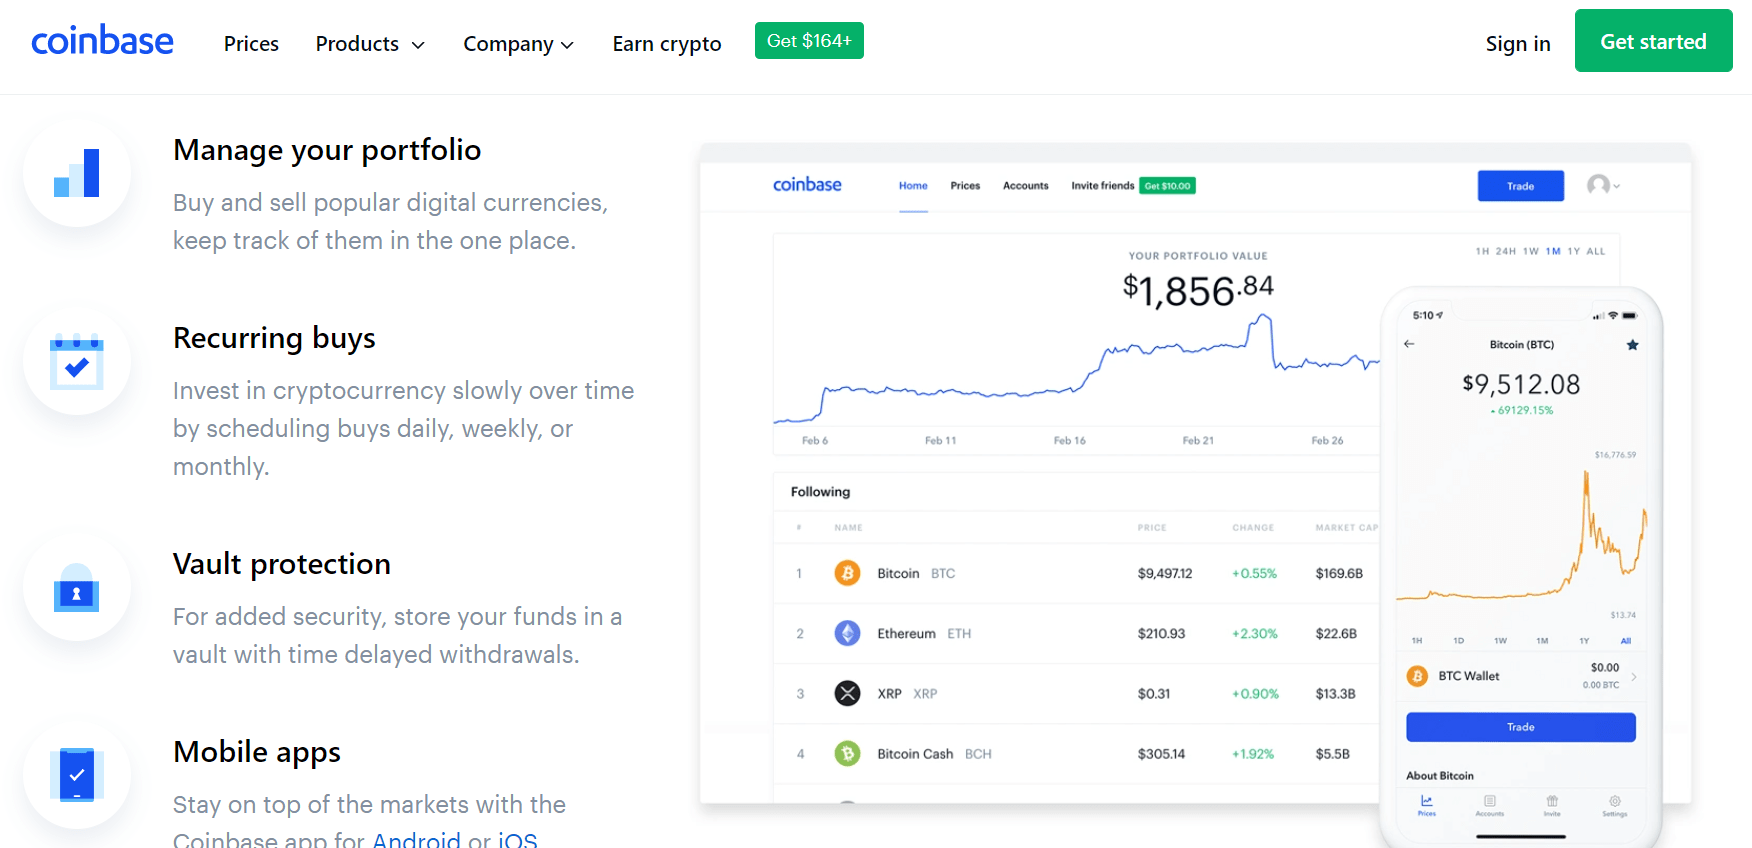 coinbase user friendly